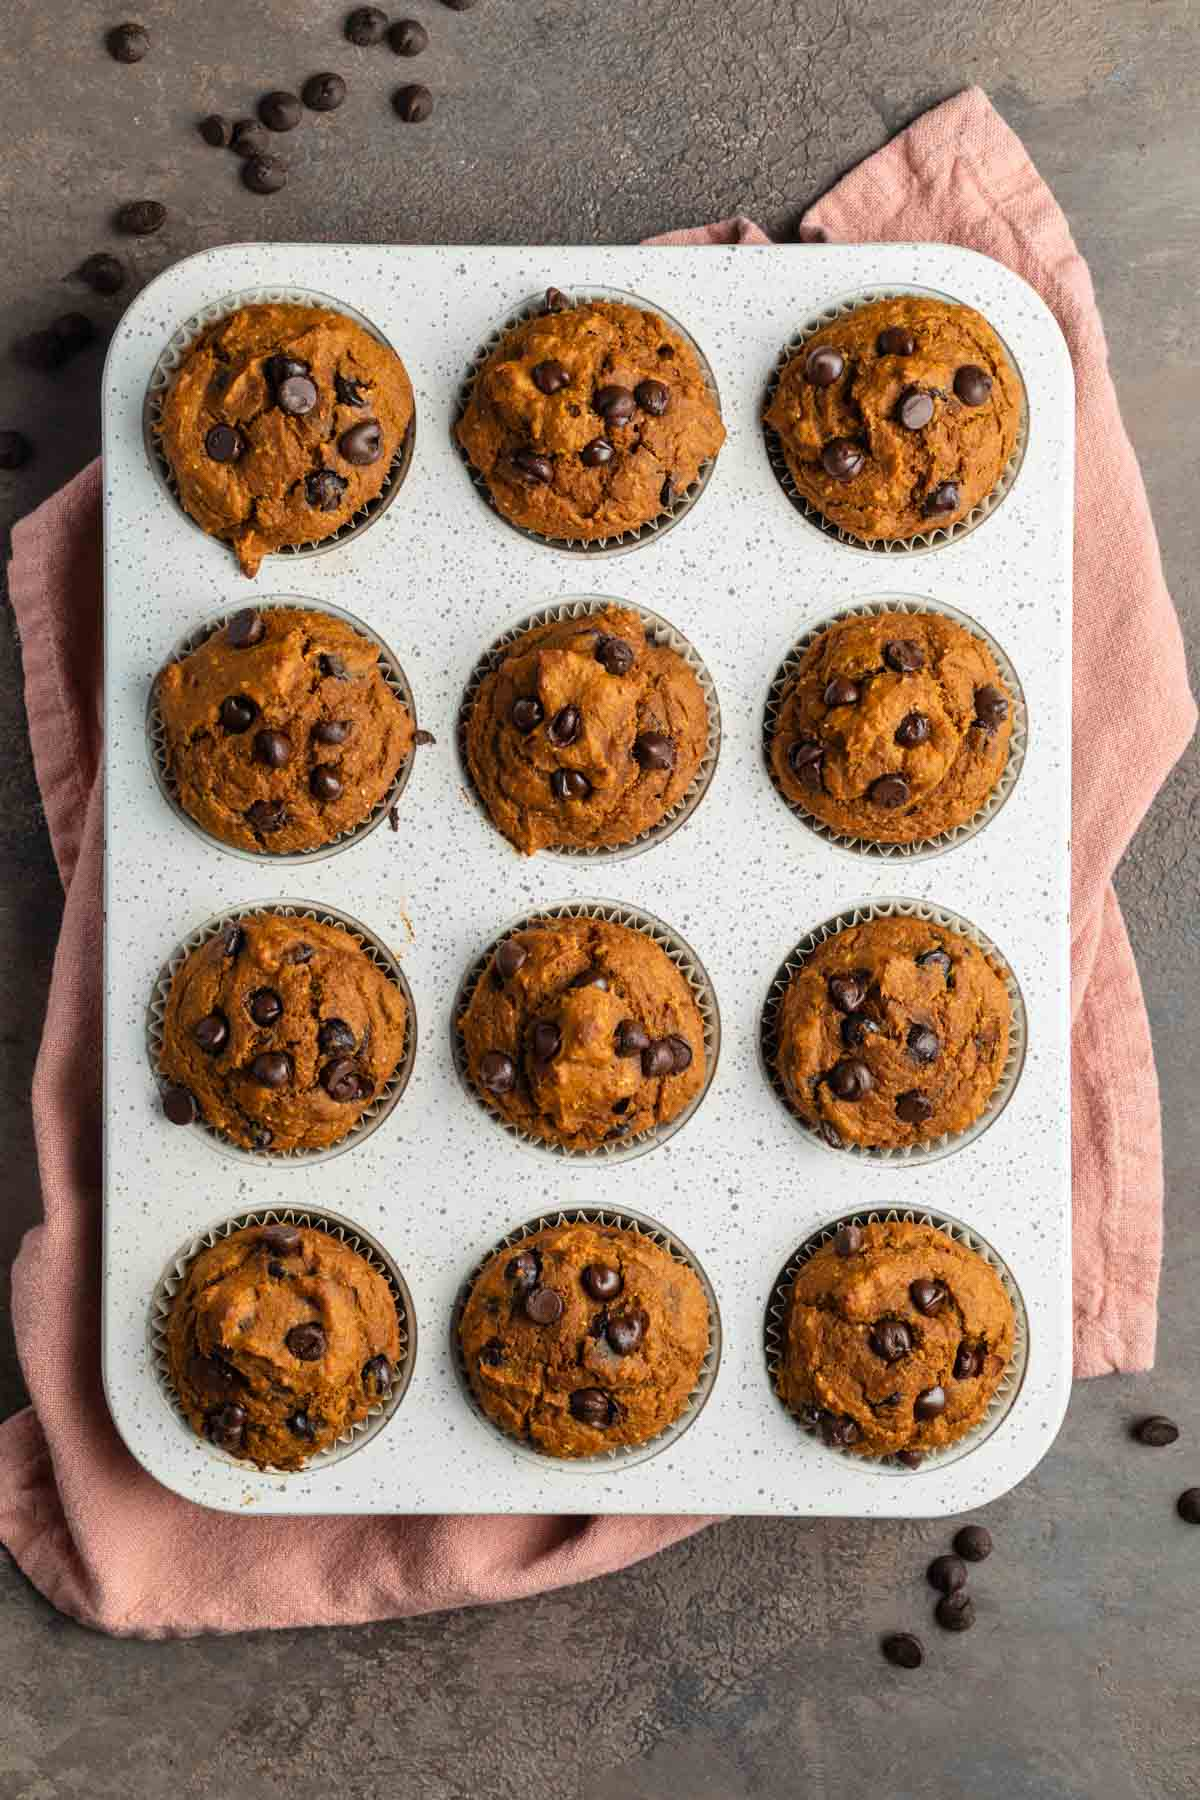 Pumpkin muffins baked up in a white muffin pan.